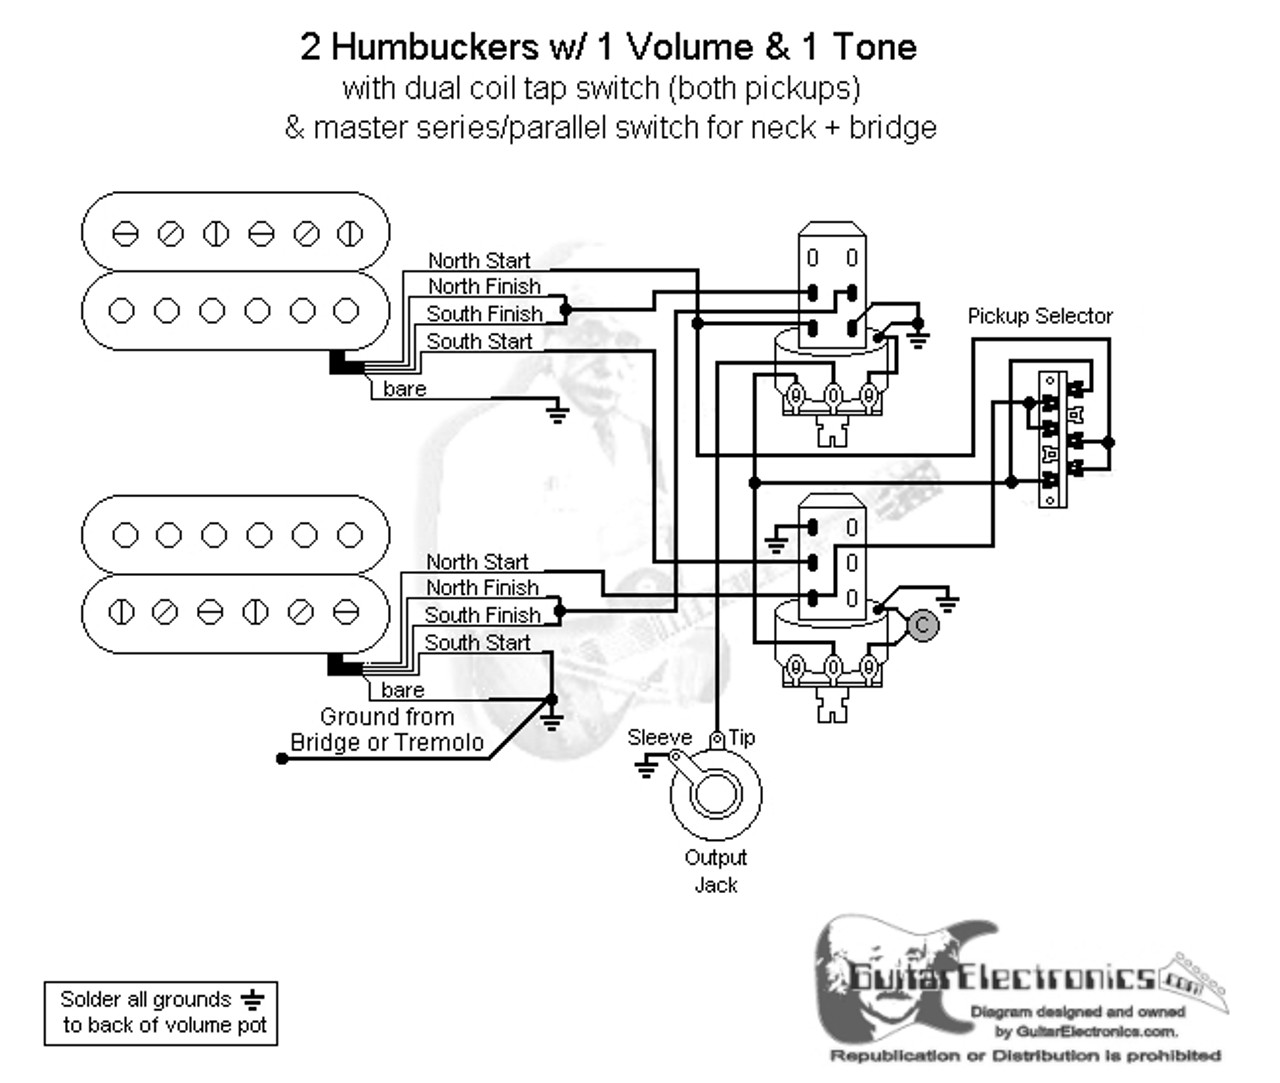 2 HBs/3-Way Lever/1 Vol/2 Tones/Coil Tap & Series Parallel